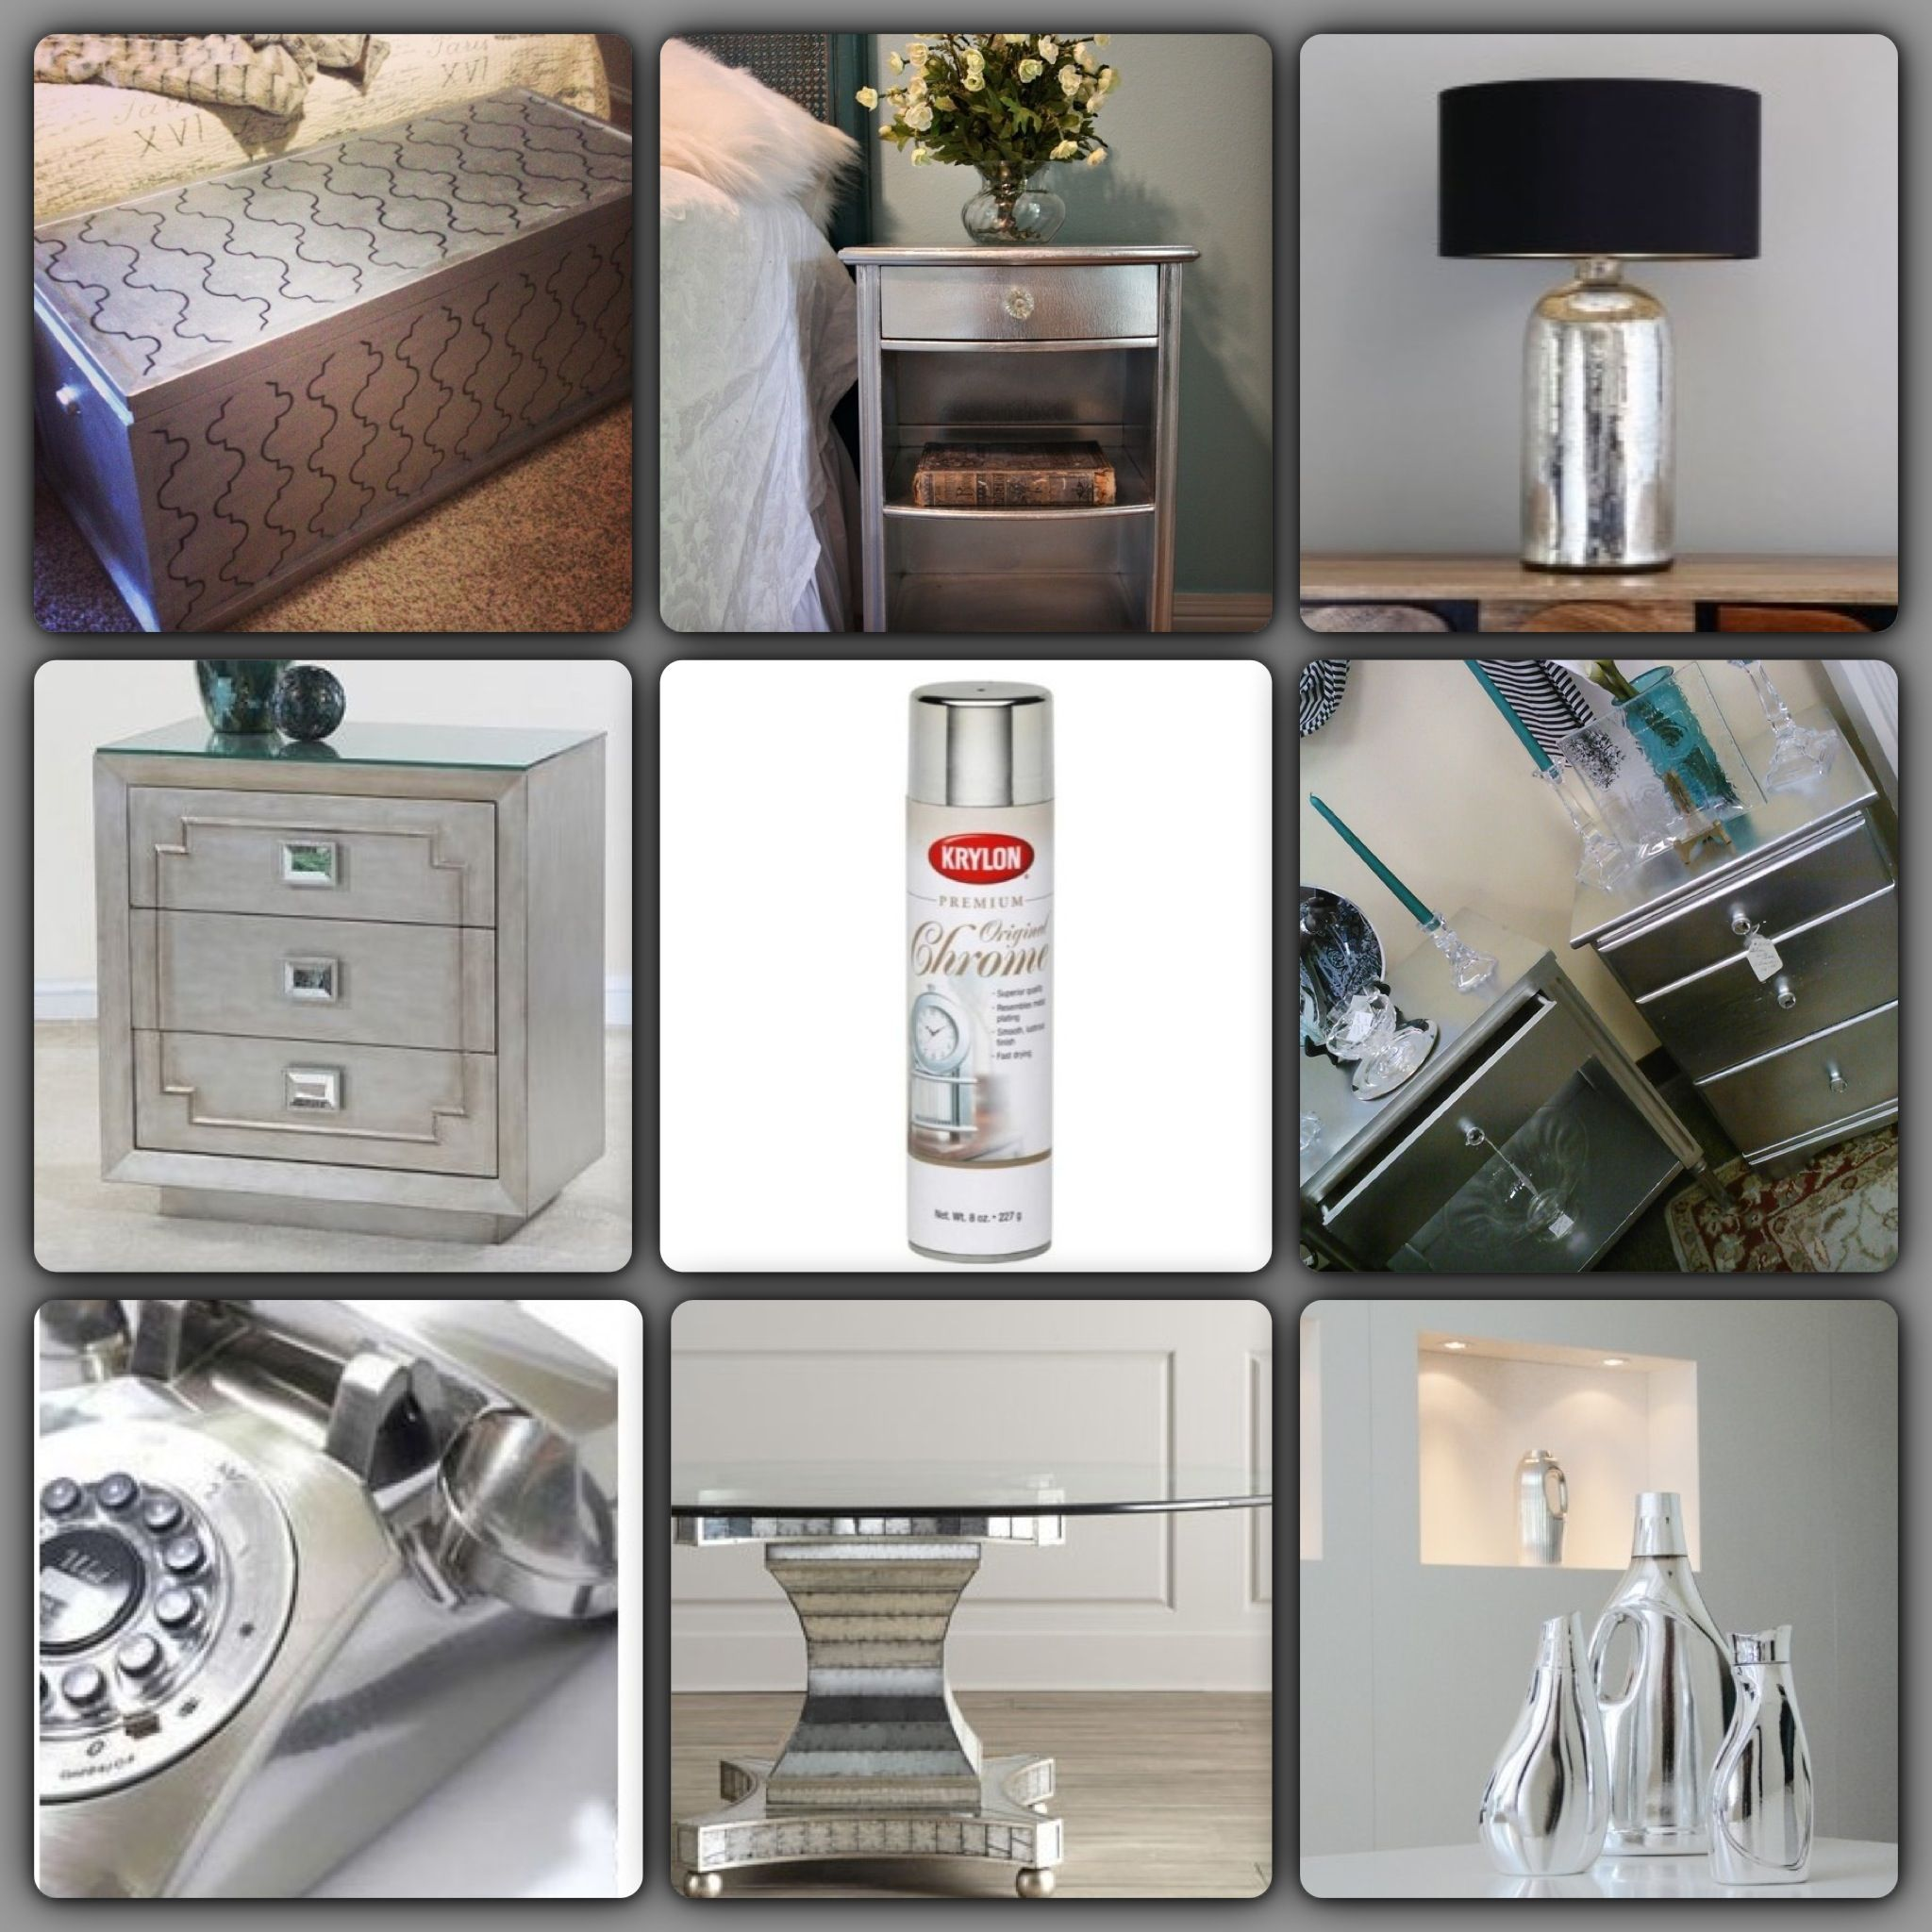 Muebles Pintados En Plata Chrome Spray Paint Decoración Pinterest